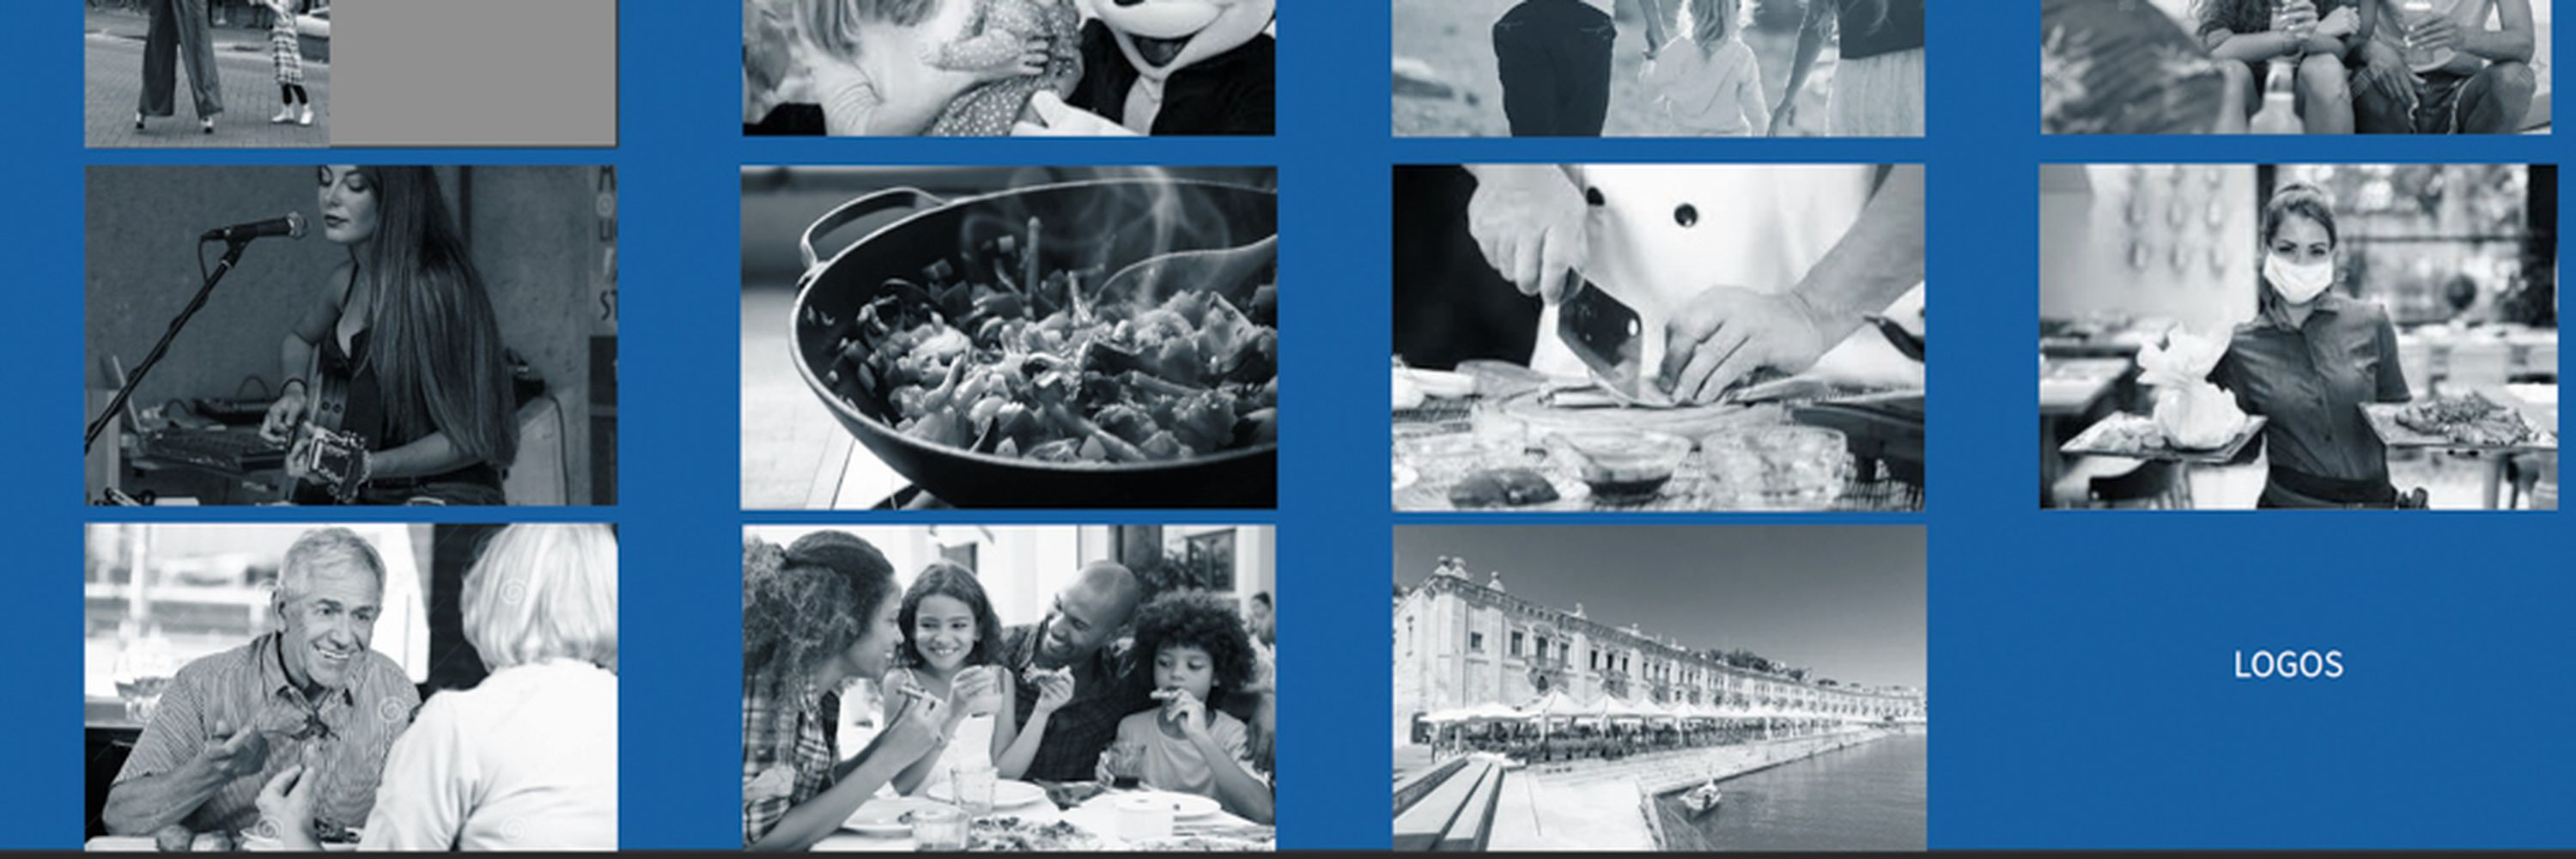 The mood board motion blur produced for this advert showing a series of black and white thumbnails to represent the shots in the commercial as described in the shot list